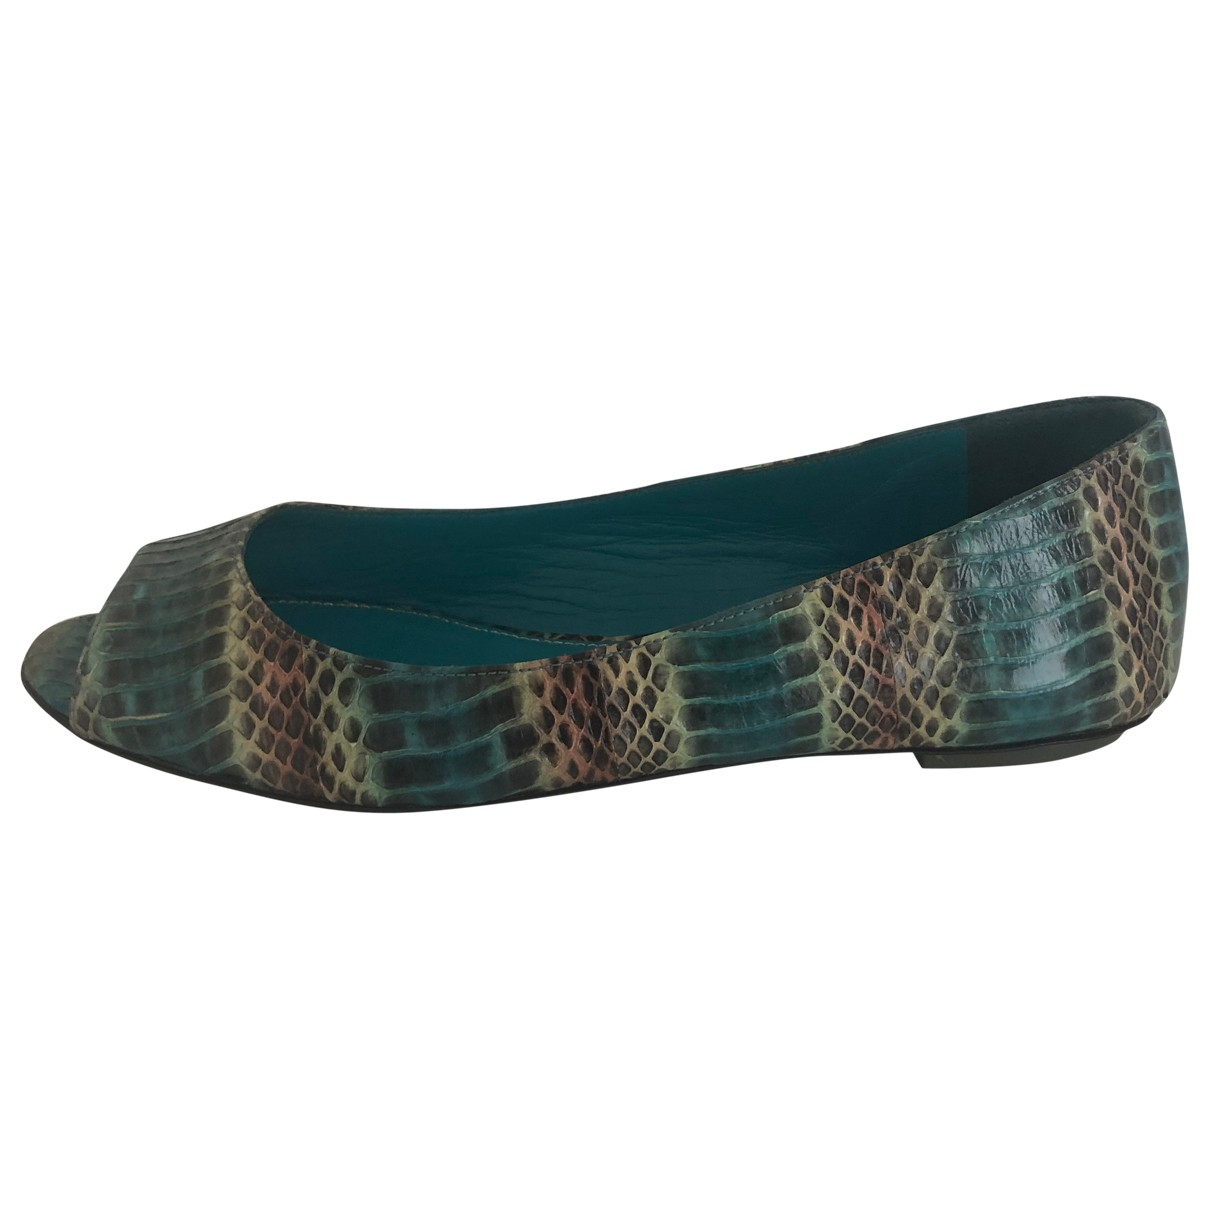 Sergio Rossi \N Green Water snake Ballet flats for Women 37 EU